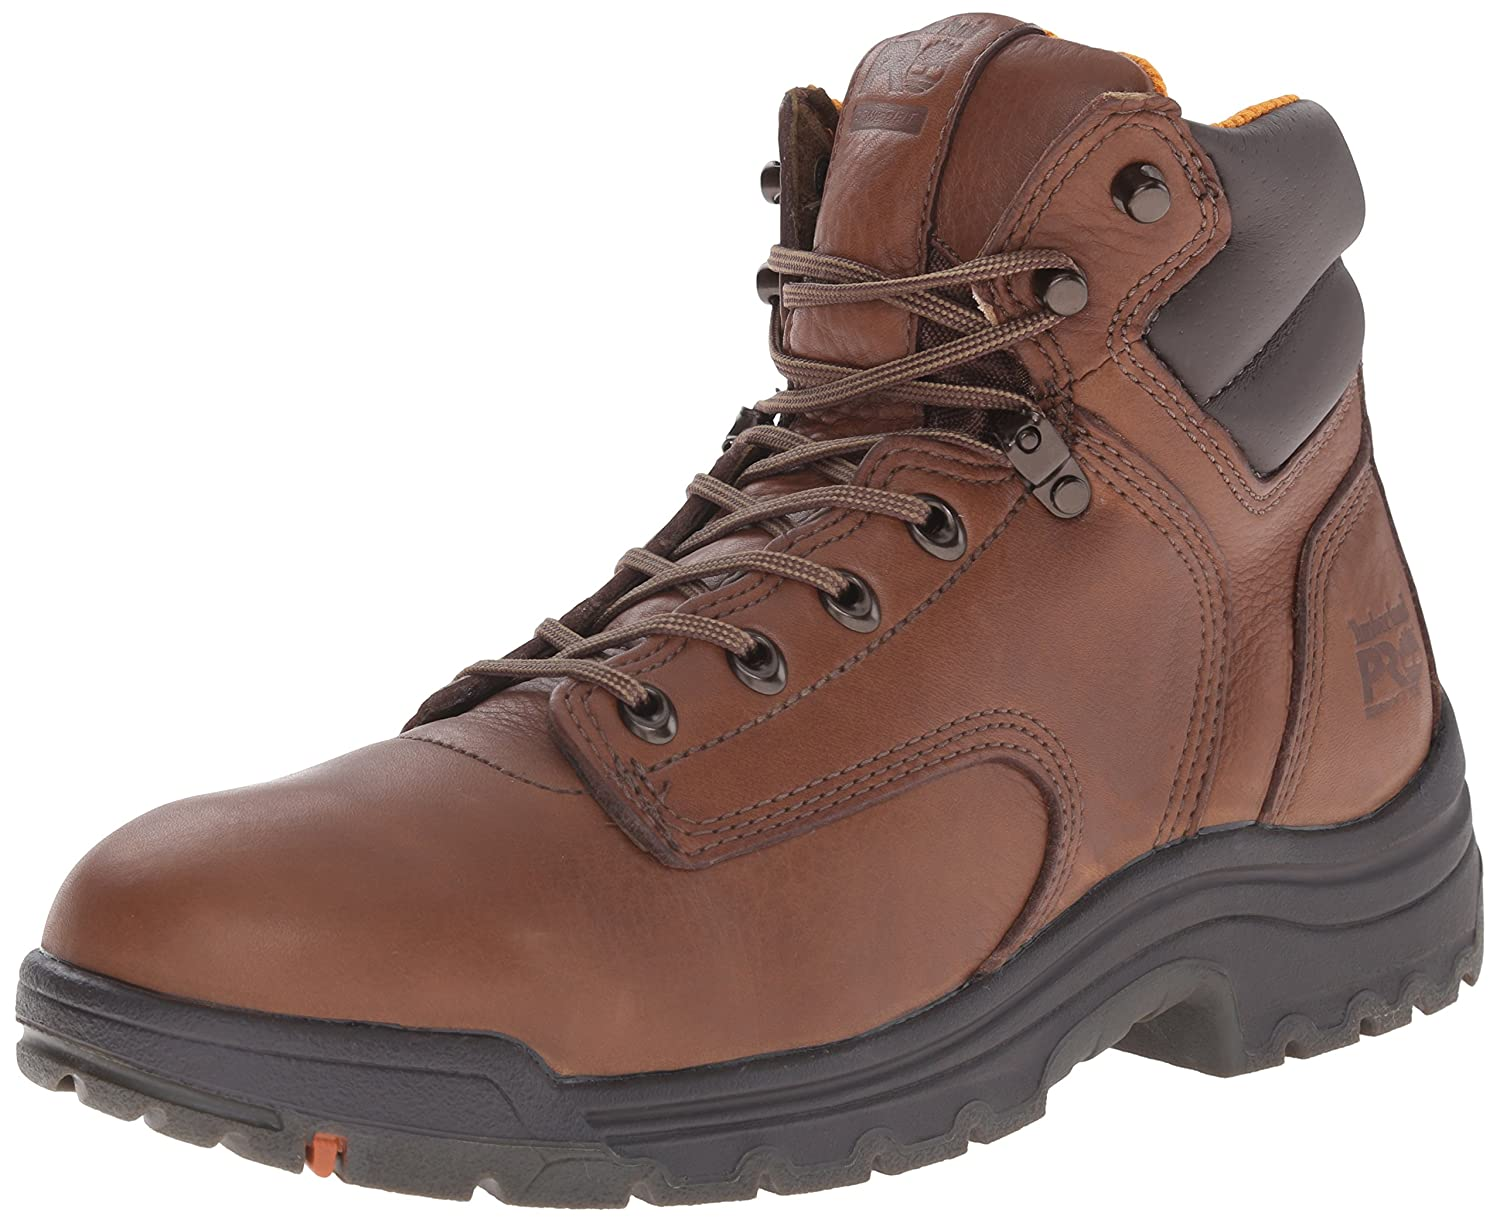 Timberland PRO メンズ B000XR6D9W 12 mens_us|Coffee/Brown Coffee/Brown 12 mens_us